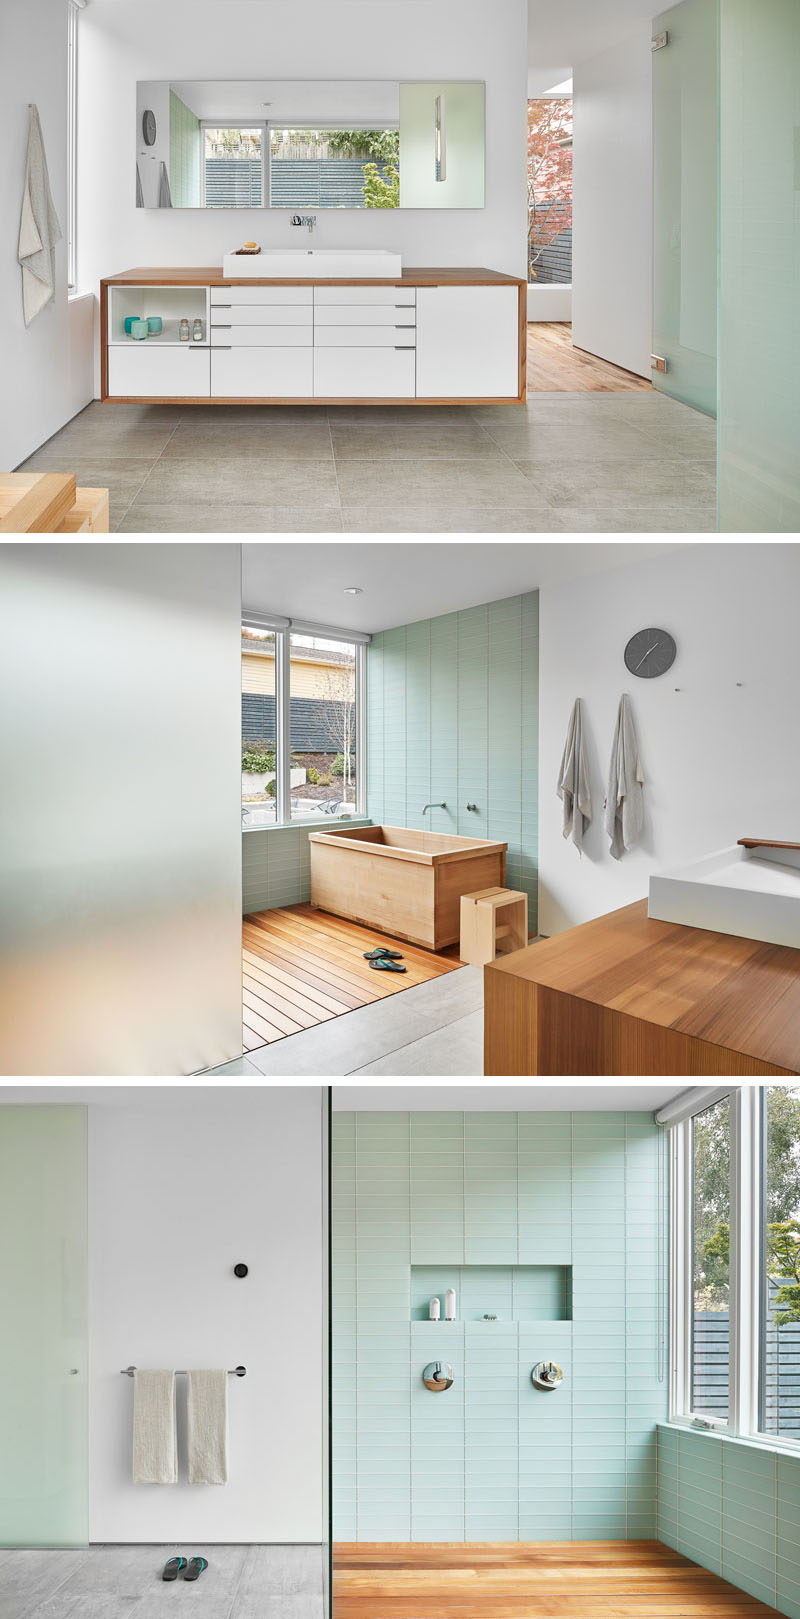 In this bathroom, custom cabinets and the Japanese soaking tub have both been made using Western Red cedar. Pastel green tiles and frosted glass makes the bathroom have a relaxed feeling.